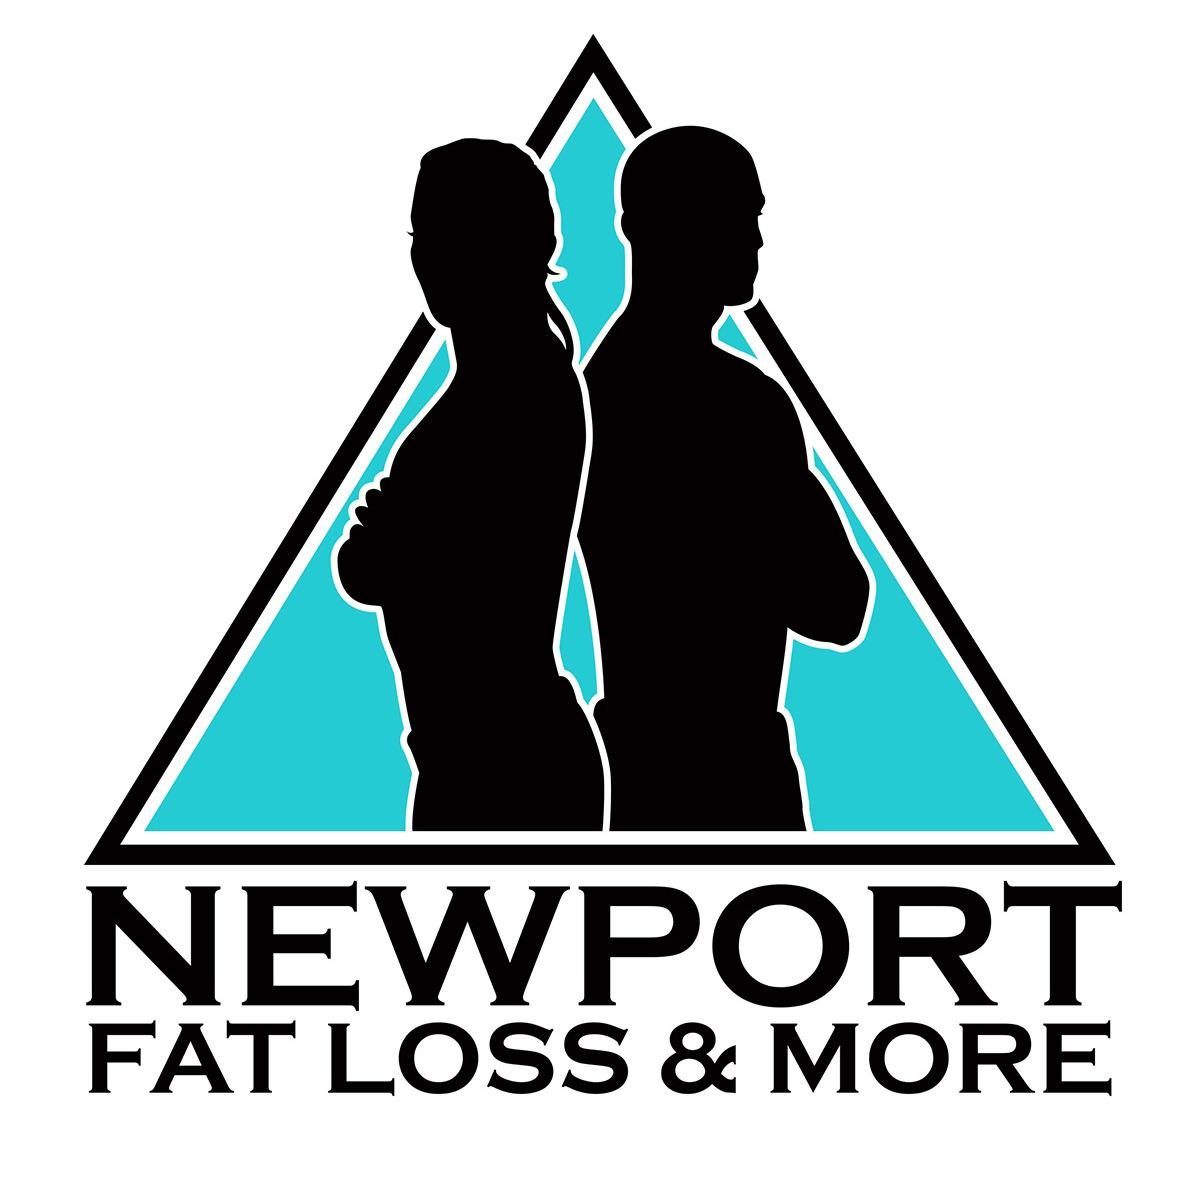 newport bbw personals Free classified ads for personals and everything else find what you are looking for or create your own ad for free.